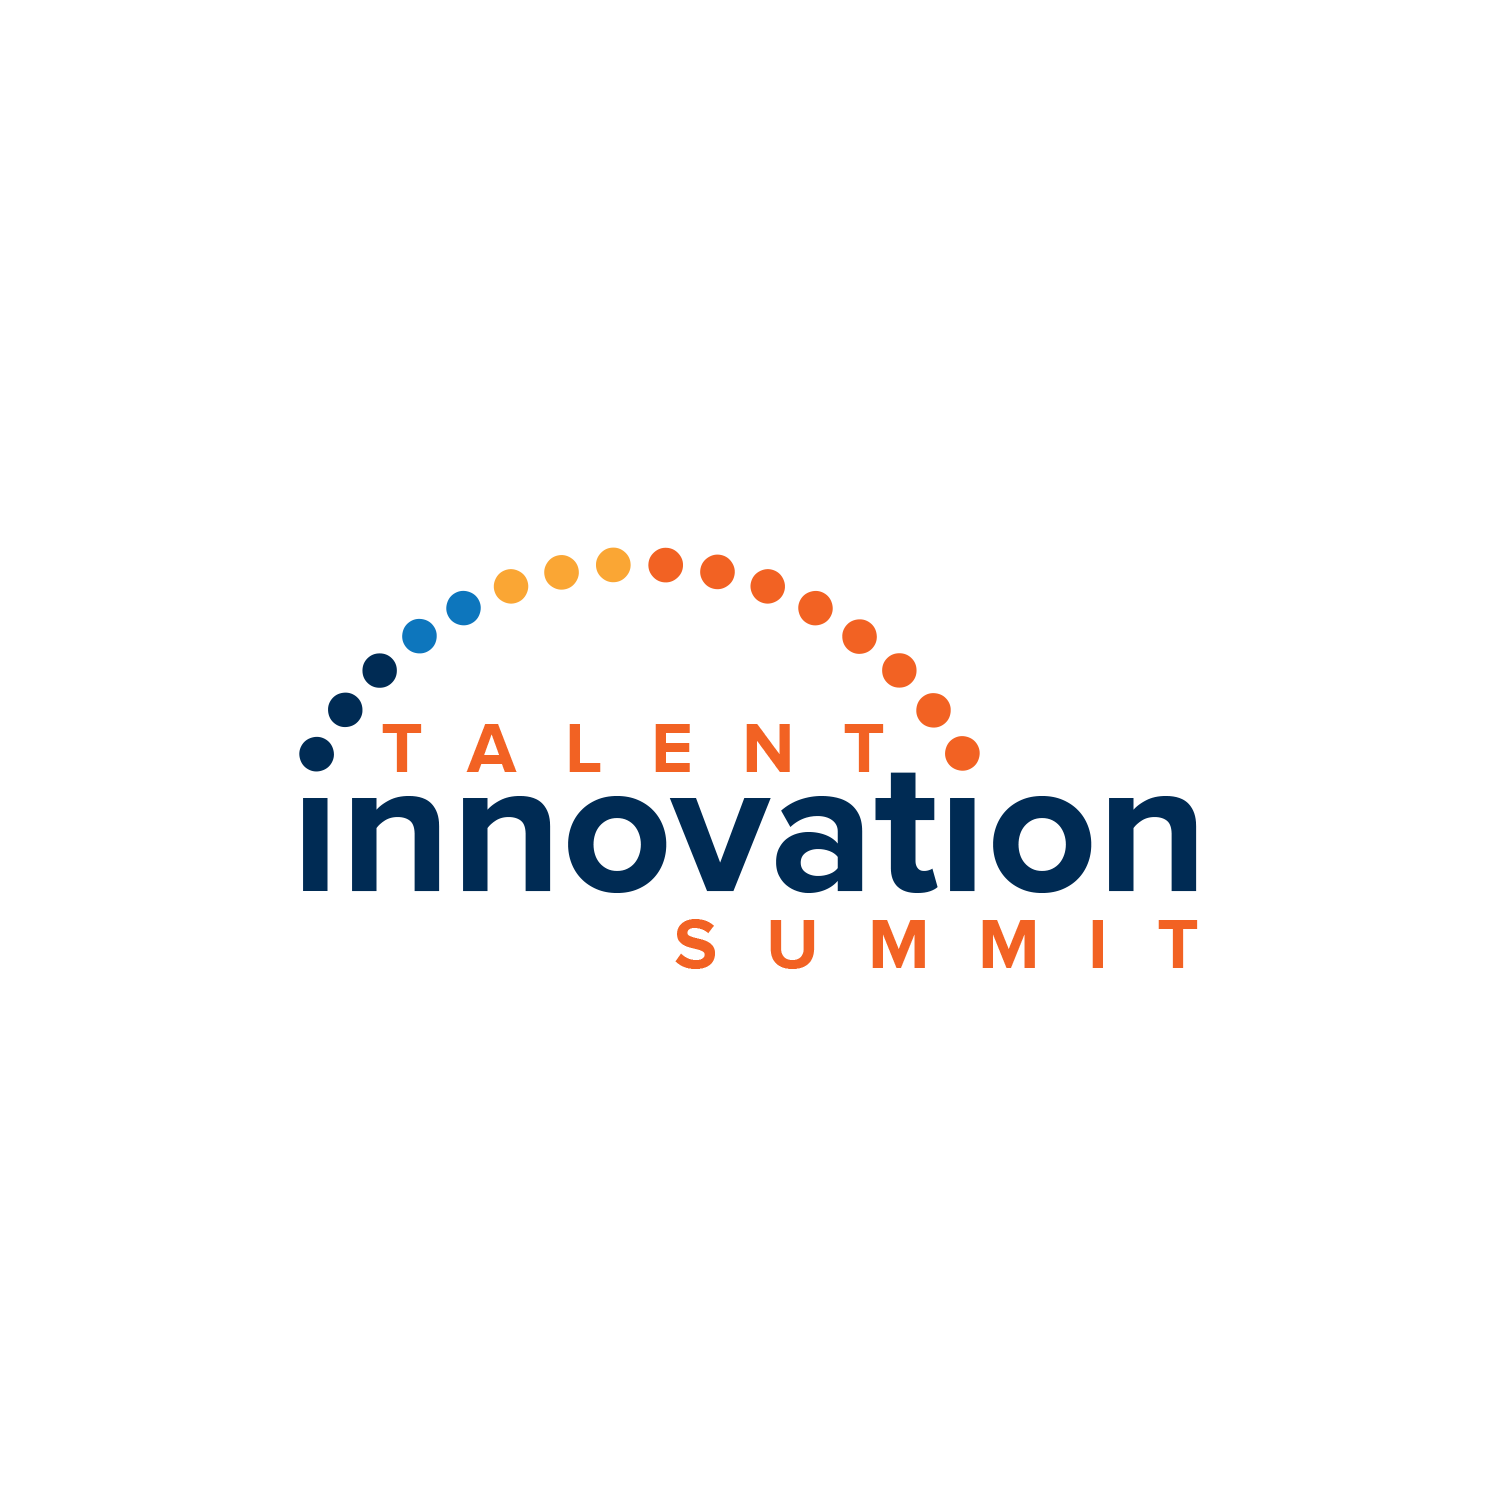 Talent Innovation Summit